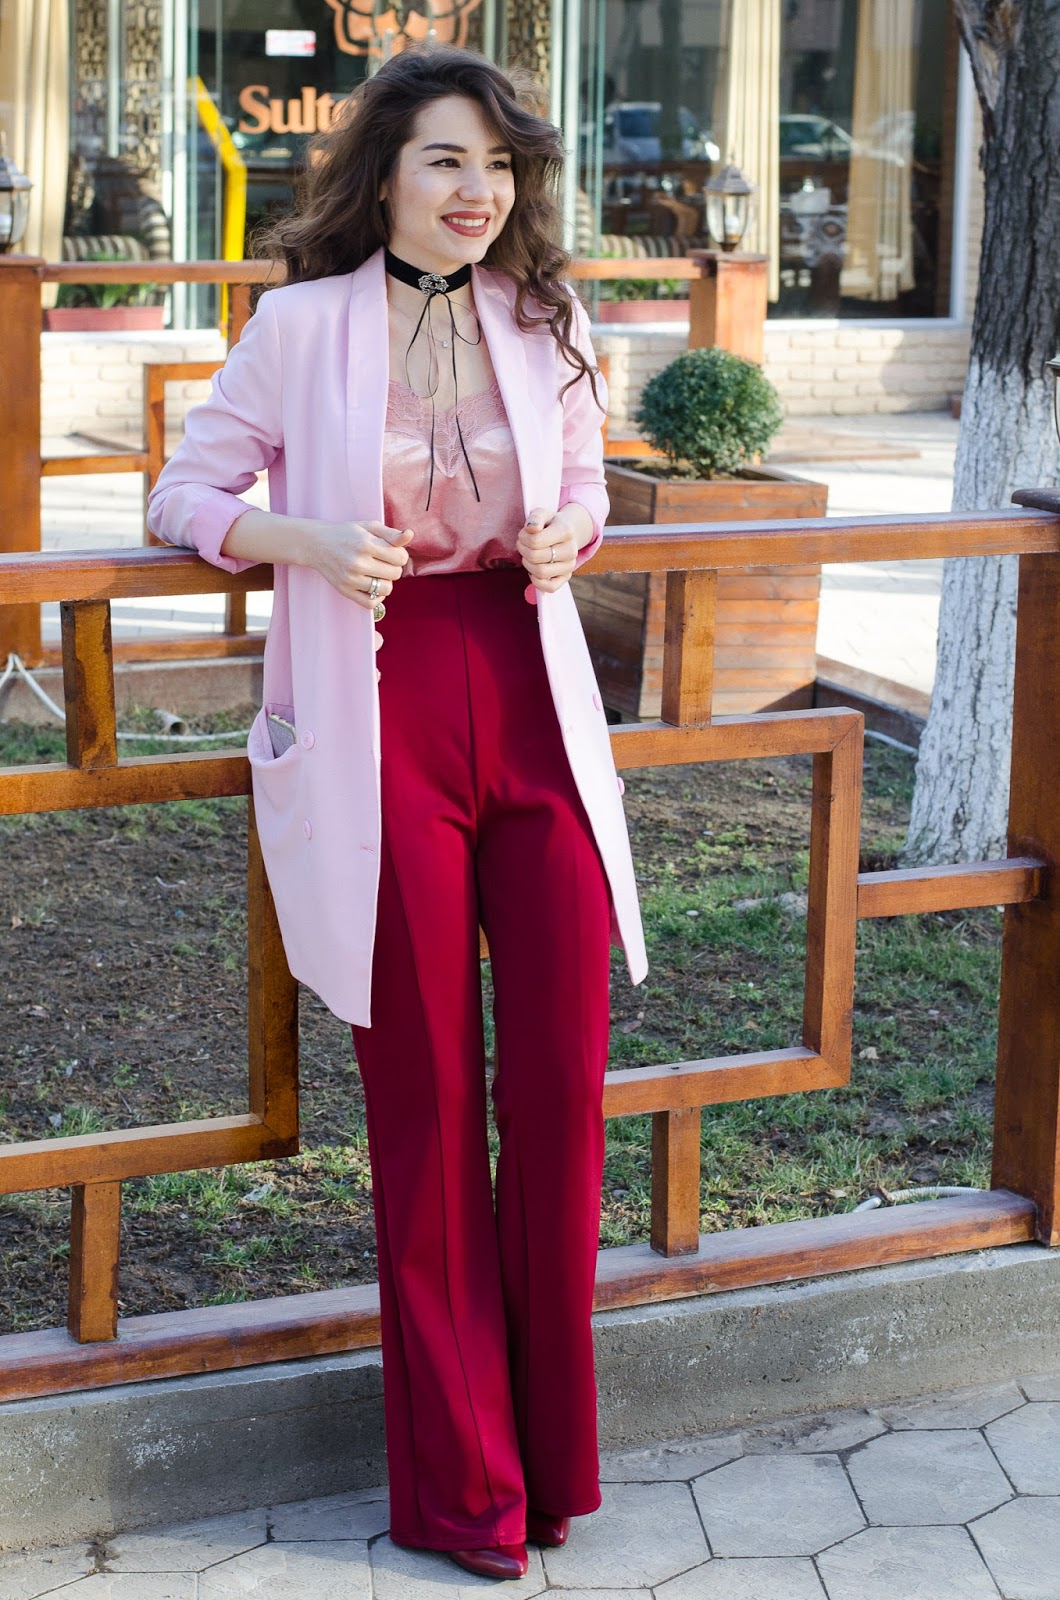 fashion blogger diyorasnotes wide leg pants cami top pink jacket asos choker